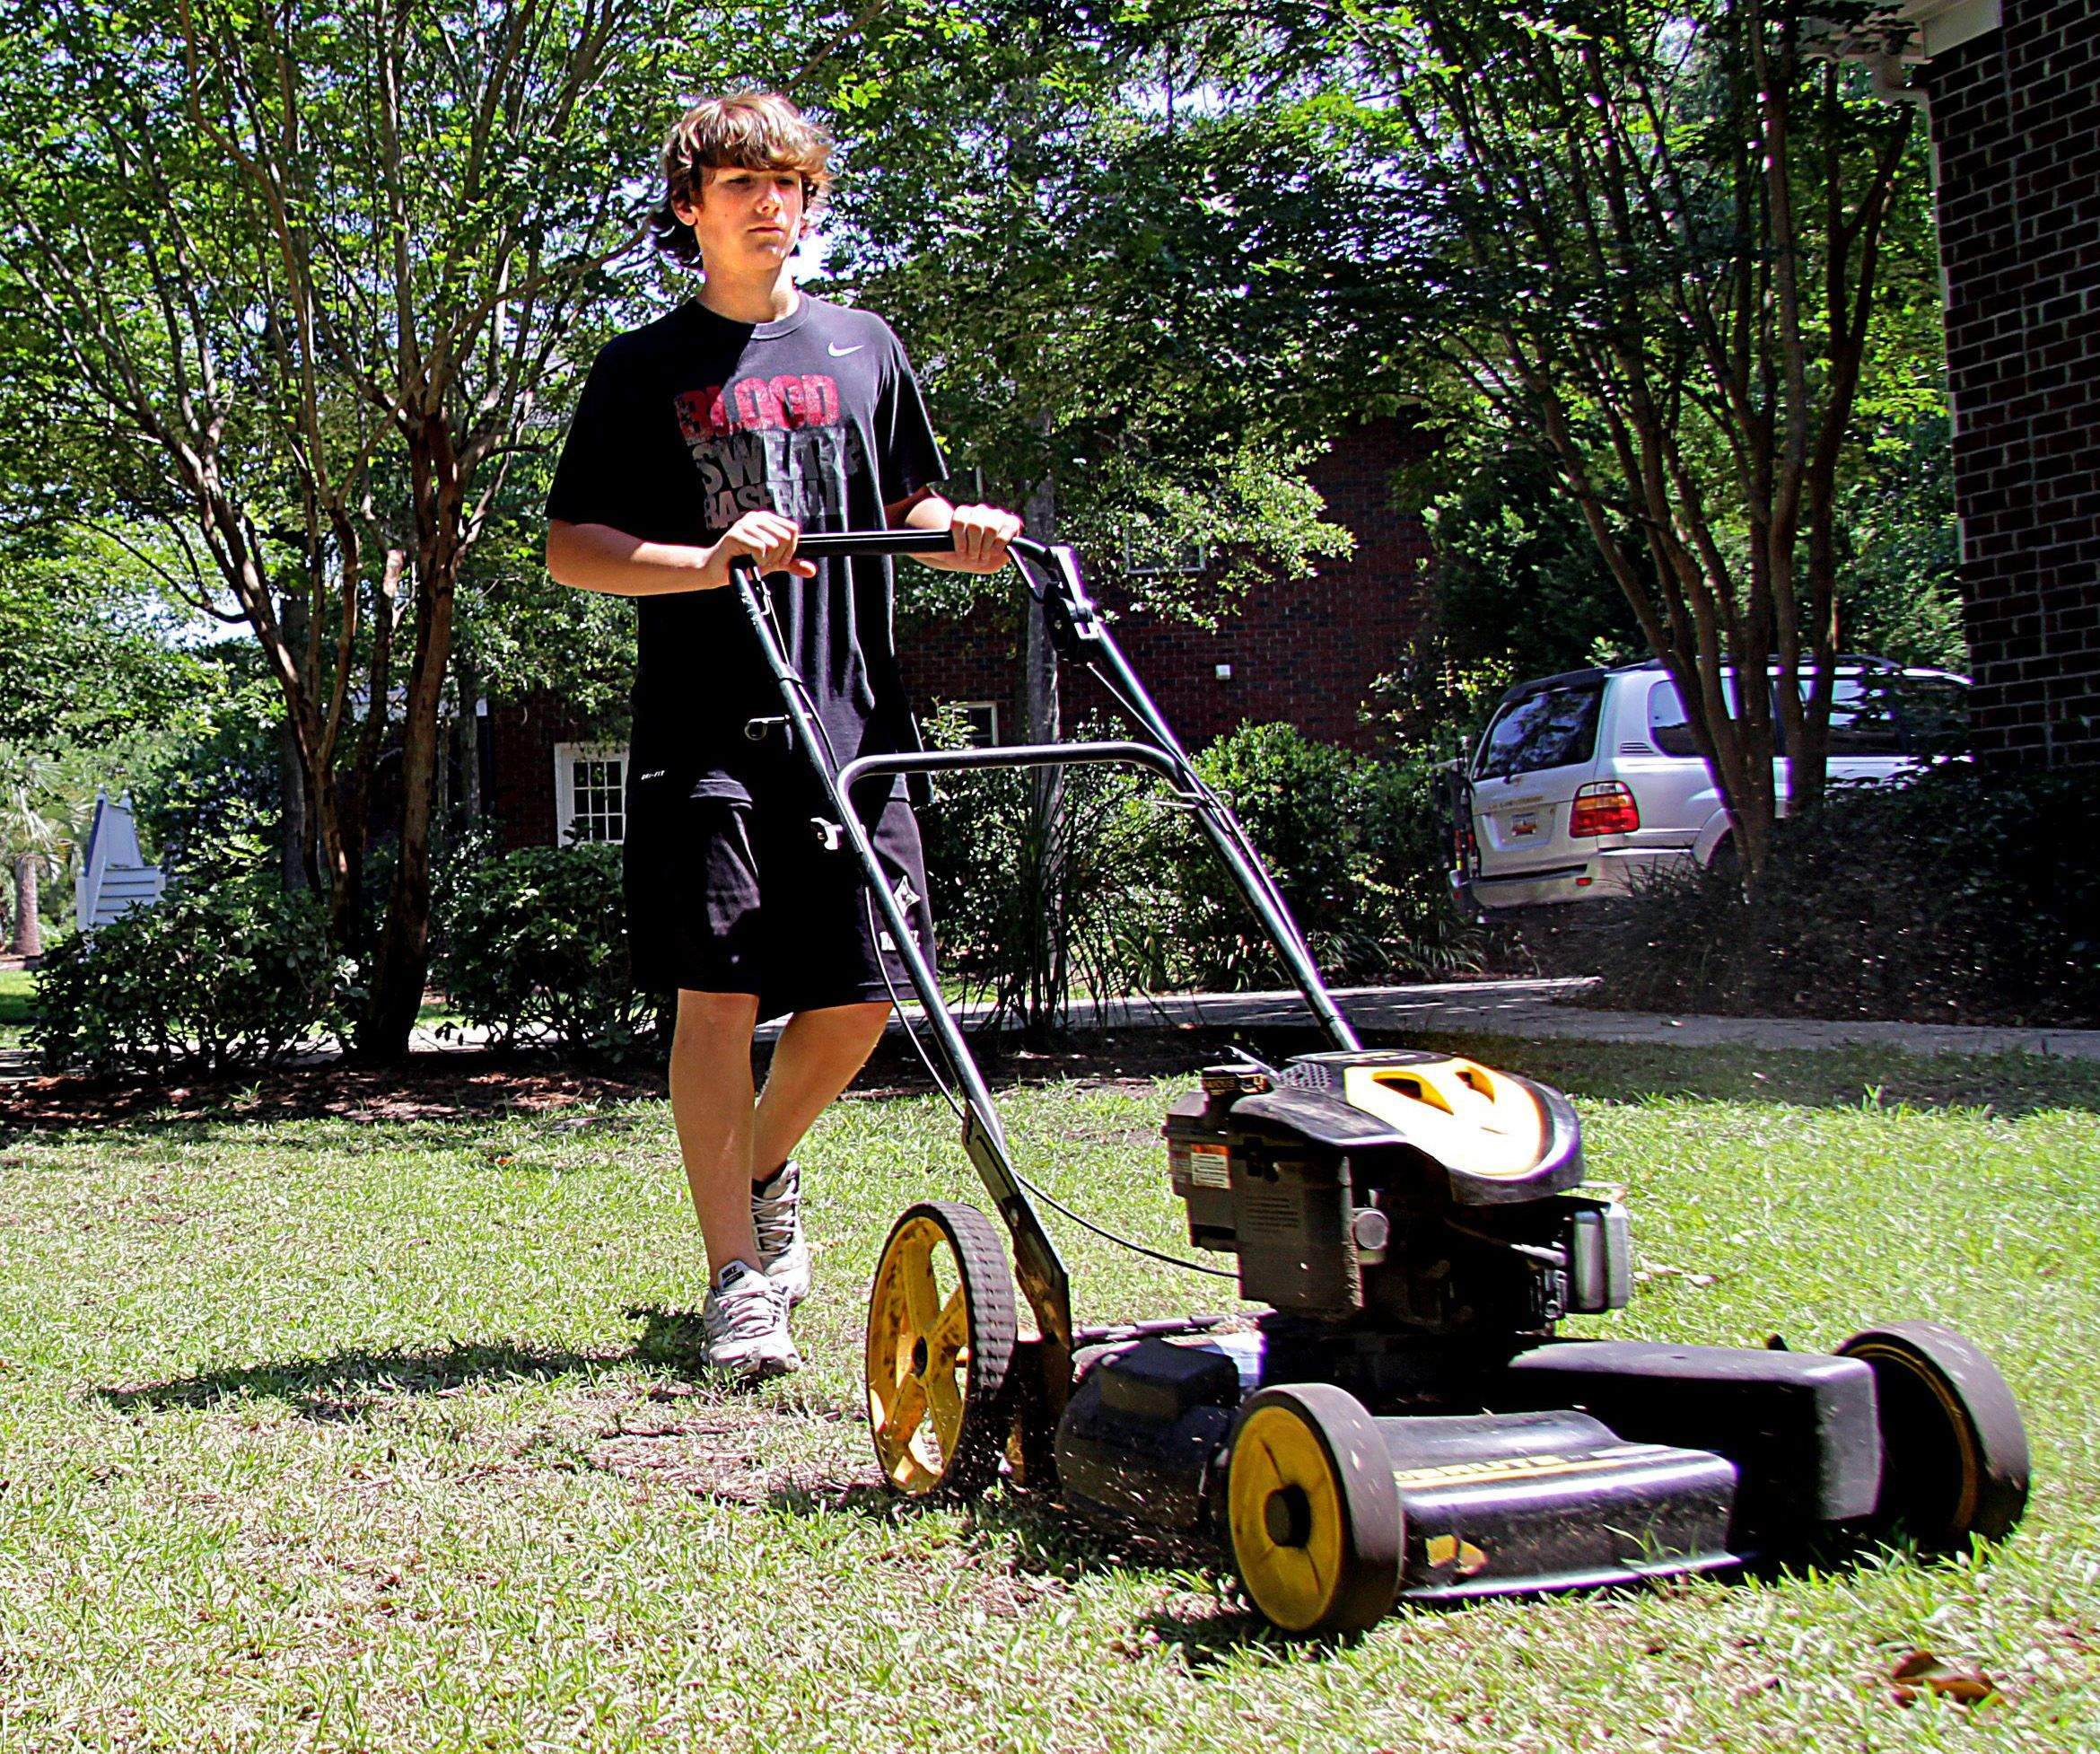 6 steps of how to start a lawn care business hirerush teenage boy mowing the lawn